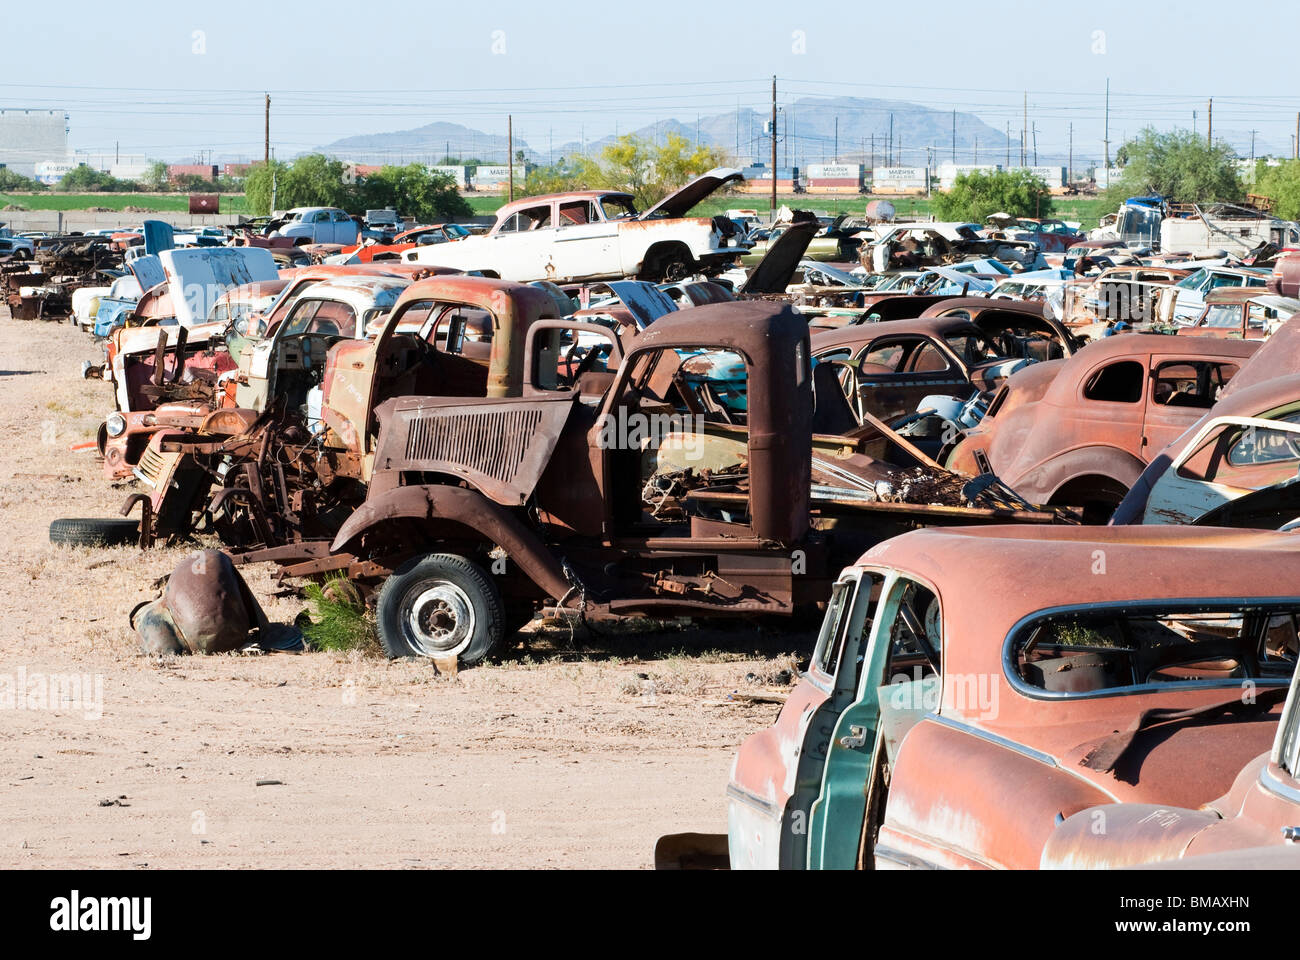 old vehicles in an auto salvage yard being recycled for parts and ...